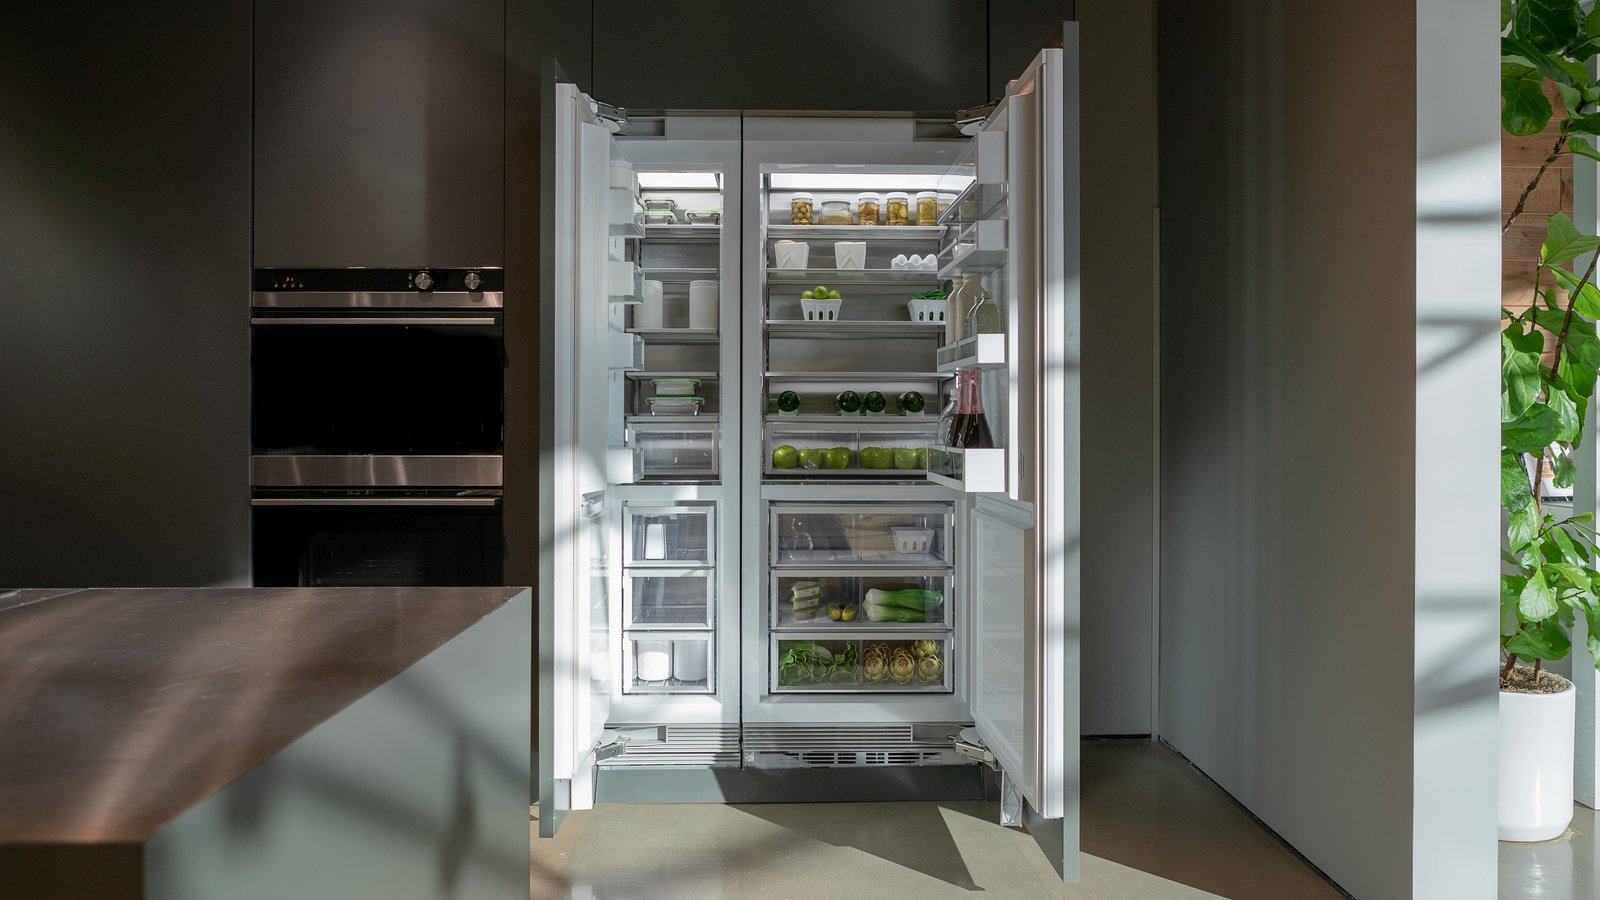 New Pioneer Travel >> Columns Refrigerator by Fisher & Paykel - Dwell